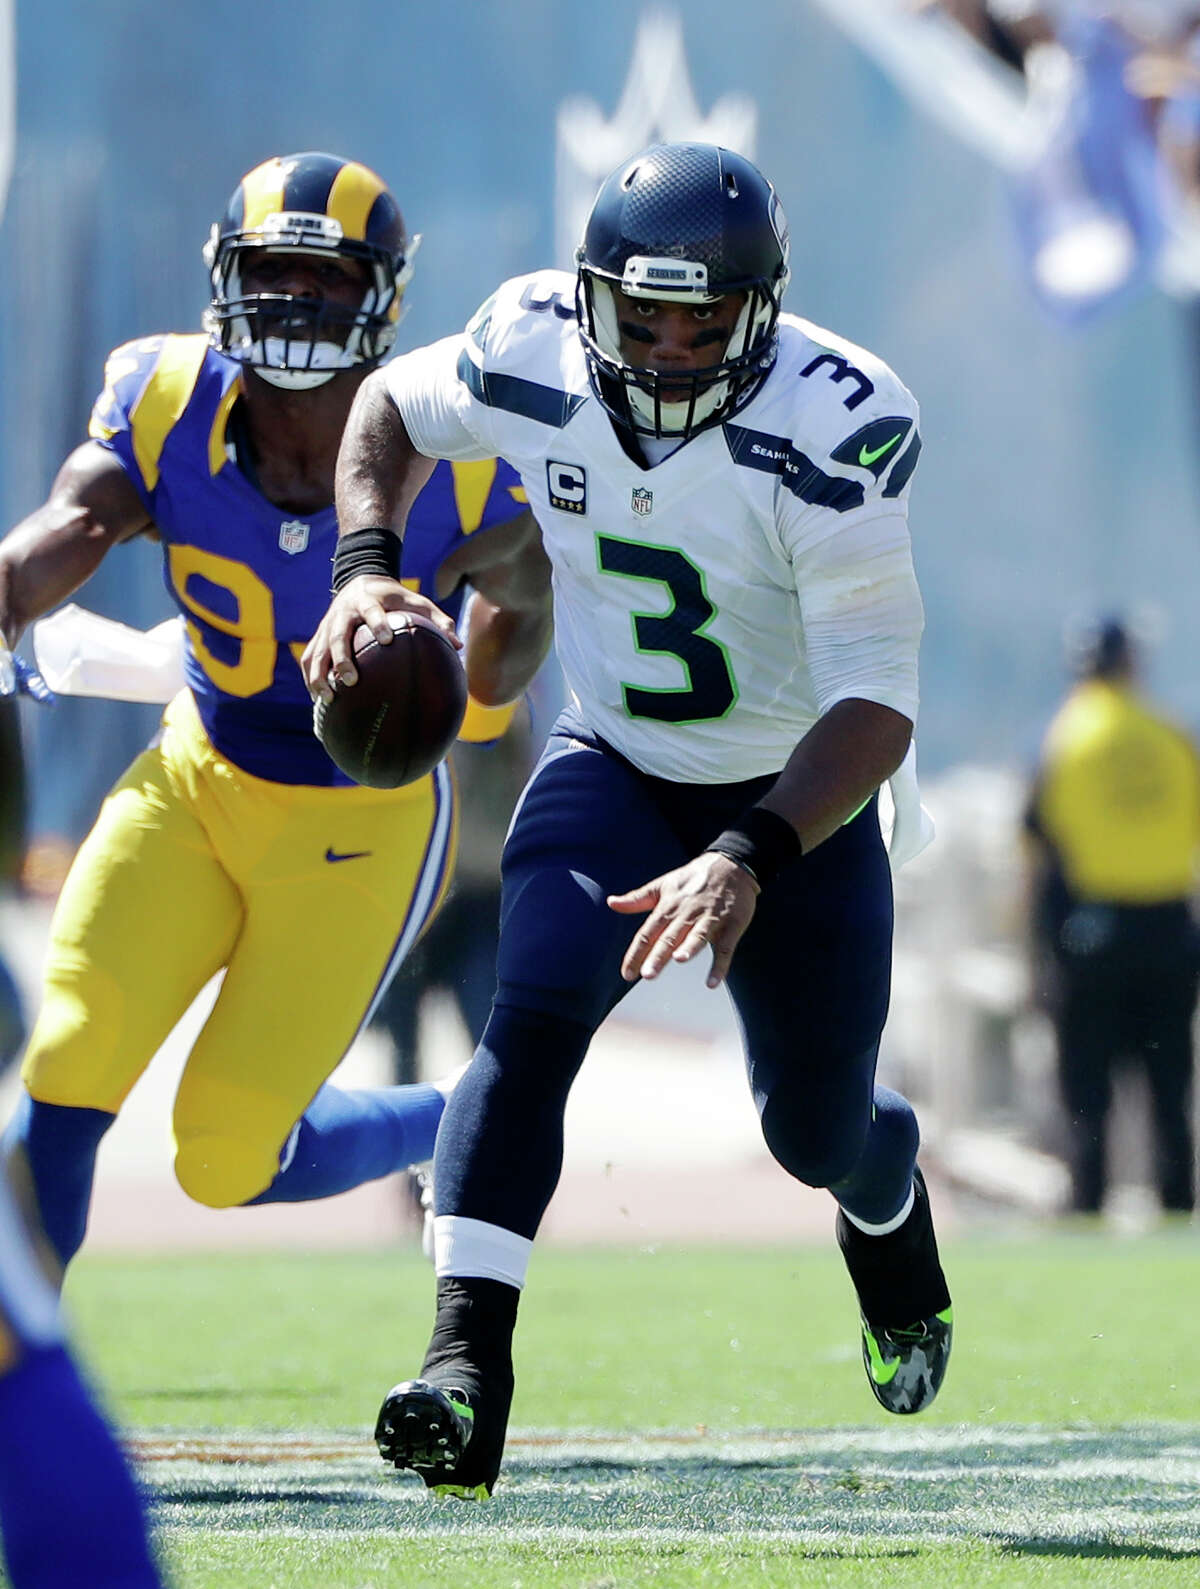 Seattle Seahawks quarterback Russell Wilson, right, runs the ball as Los Angeles Rams defensive end Robert Quinn pursues during the first half an NFL football game at Los Angeles Memorial Coliseum, Sunday, Sept. 18, 2016, in Los Angeles. (AP Photo/Jae Hong)